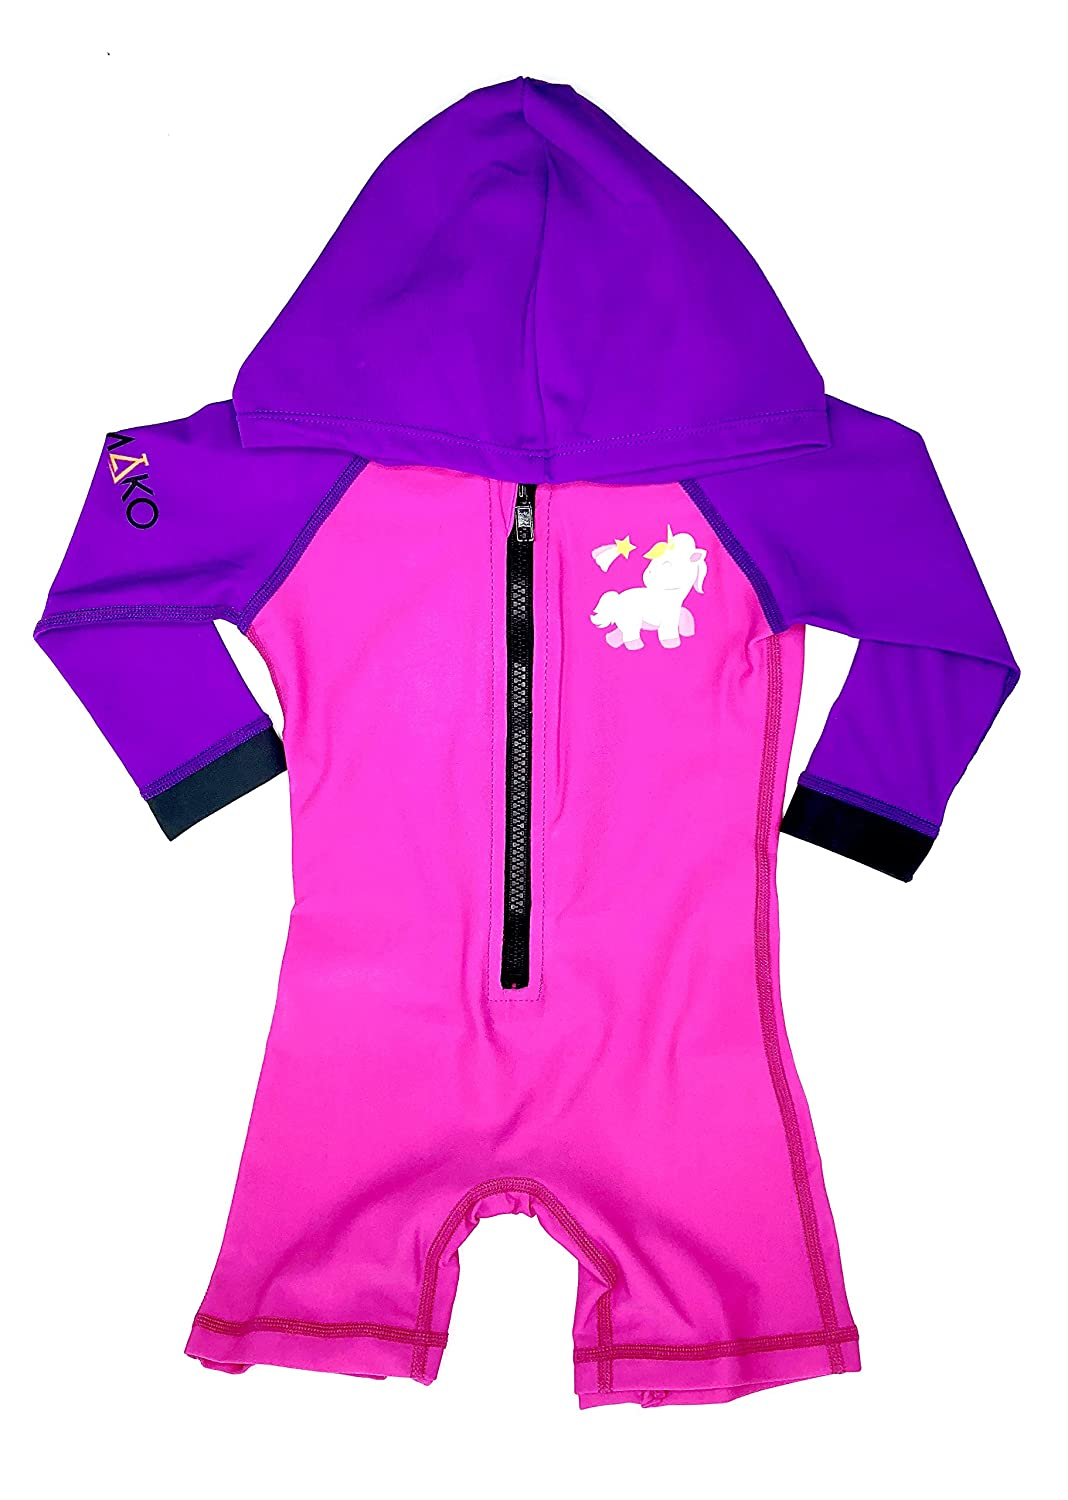 LabsByMAKO MAKO Baby/Toddler Hooded Swim Suit UPF 50+ One Piece Rash Guard Sun Suit